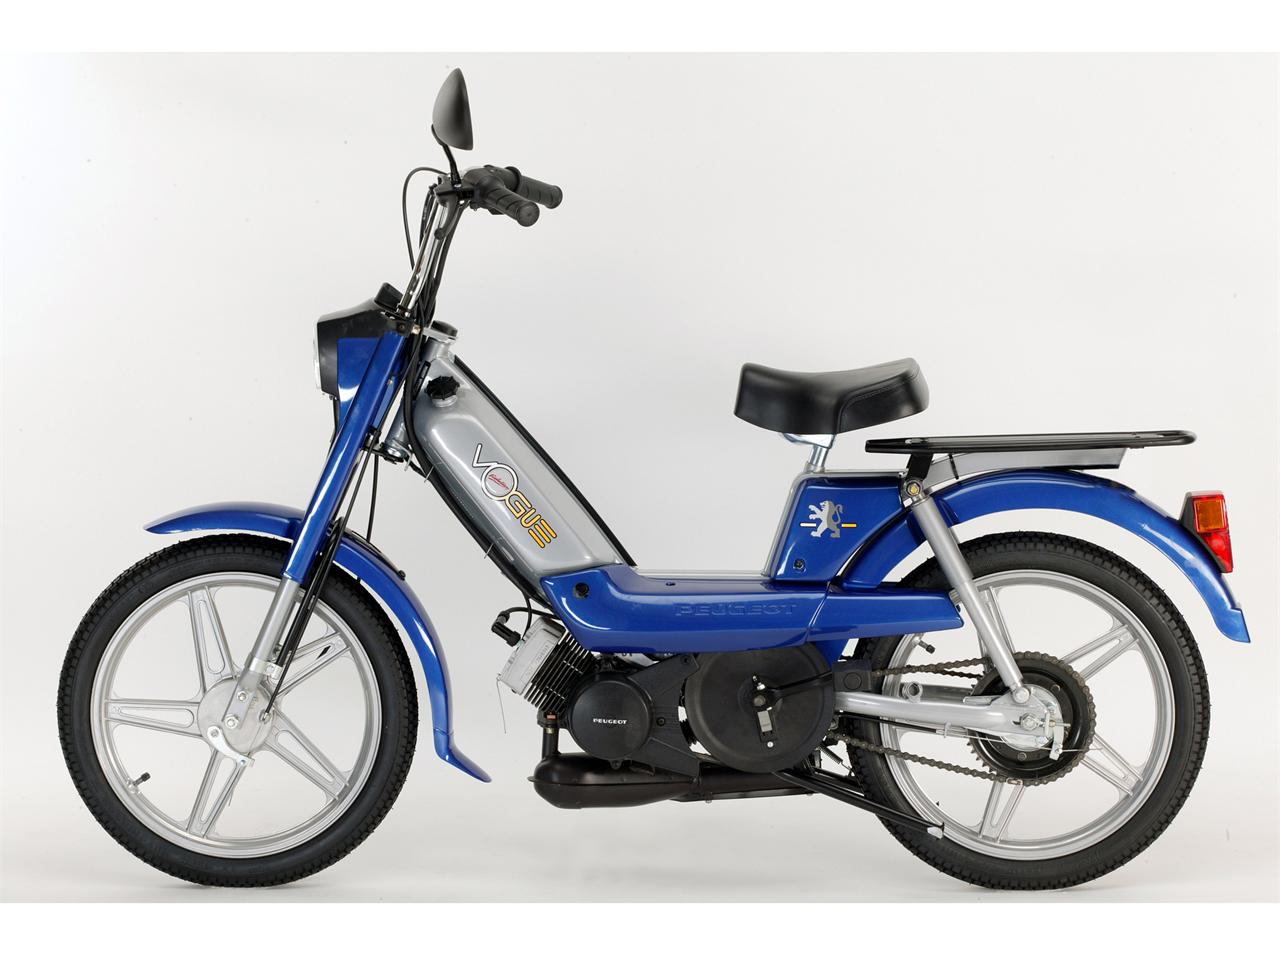 950 € - Vente/Achat scooter PEUGEOT VOGUE S2/VS2 occasion Nice ...